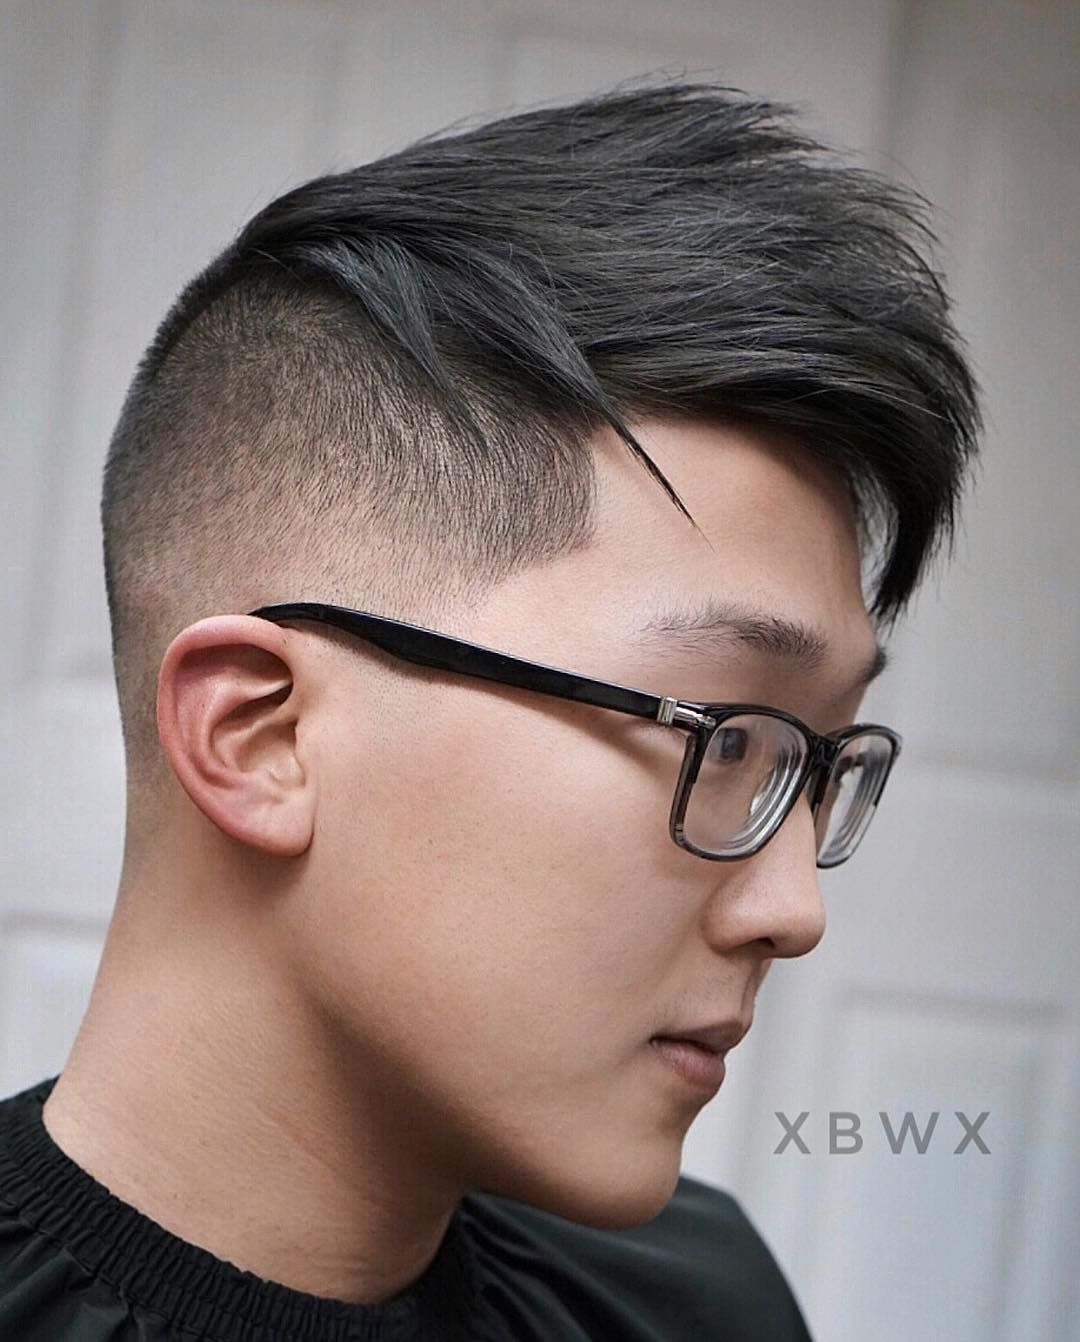 29 Best Hairstyles For Asian Men 2020 Styles Asian Men Hairstyle Mens Hairstyles Short Asian Hair